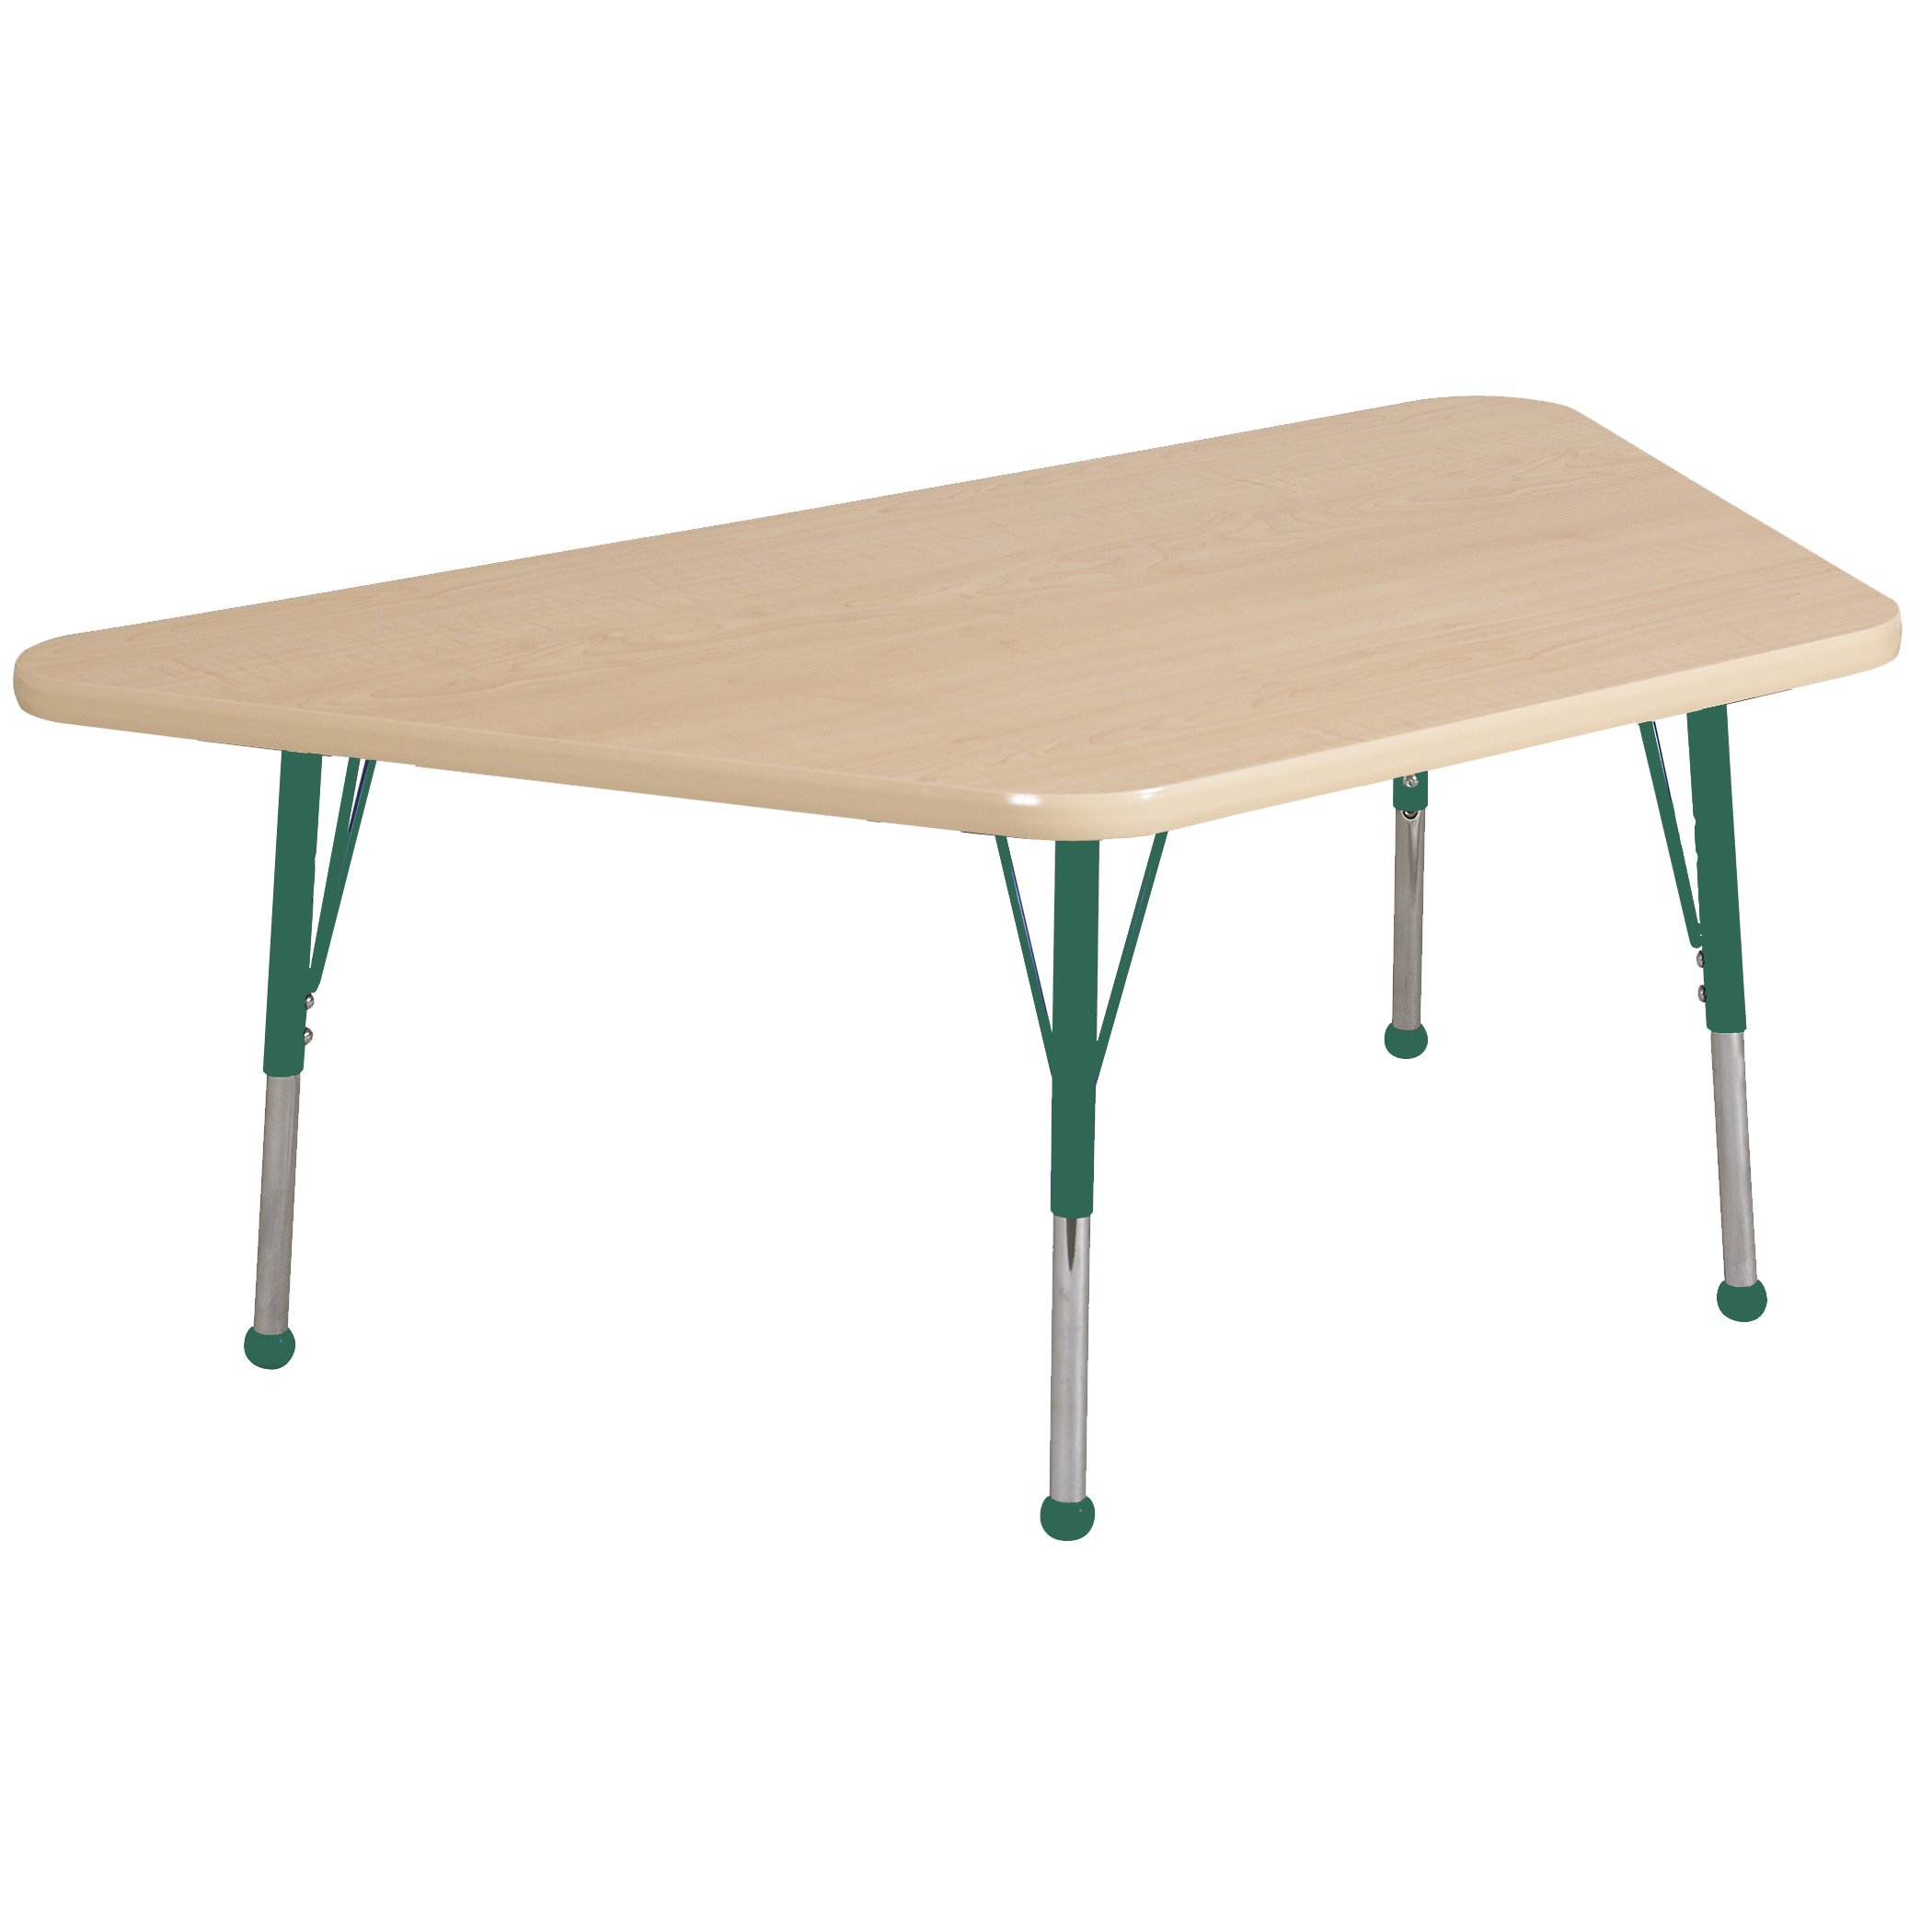 ECR4Kids Mesa Premium 30'' x 60'' Trapezoid School Activity Table, Toddler Legs w/Ball Glides, Adjustable Height 15-23 inch (Maple/Green)